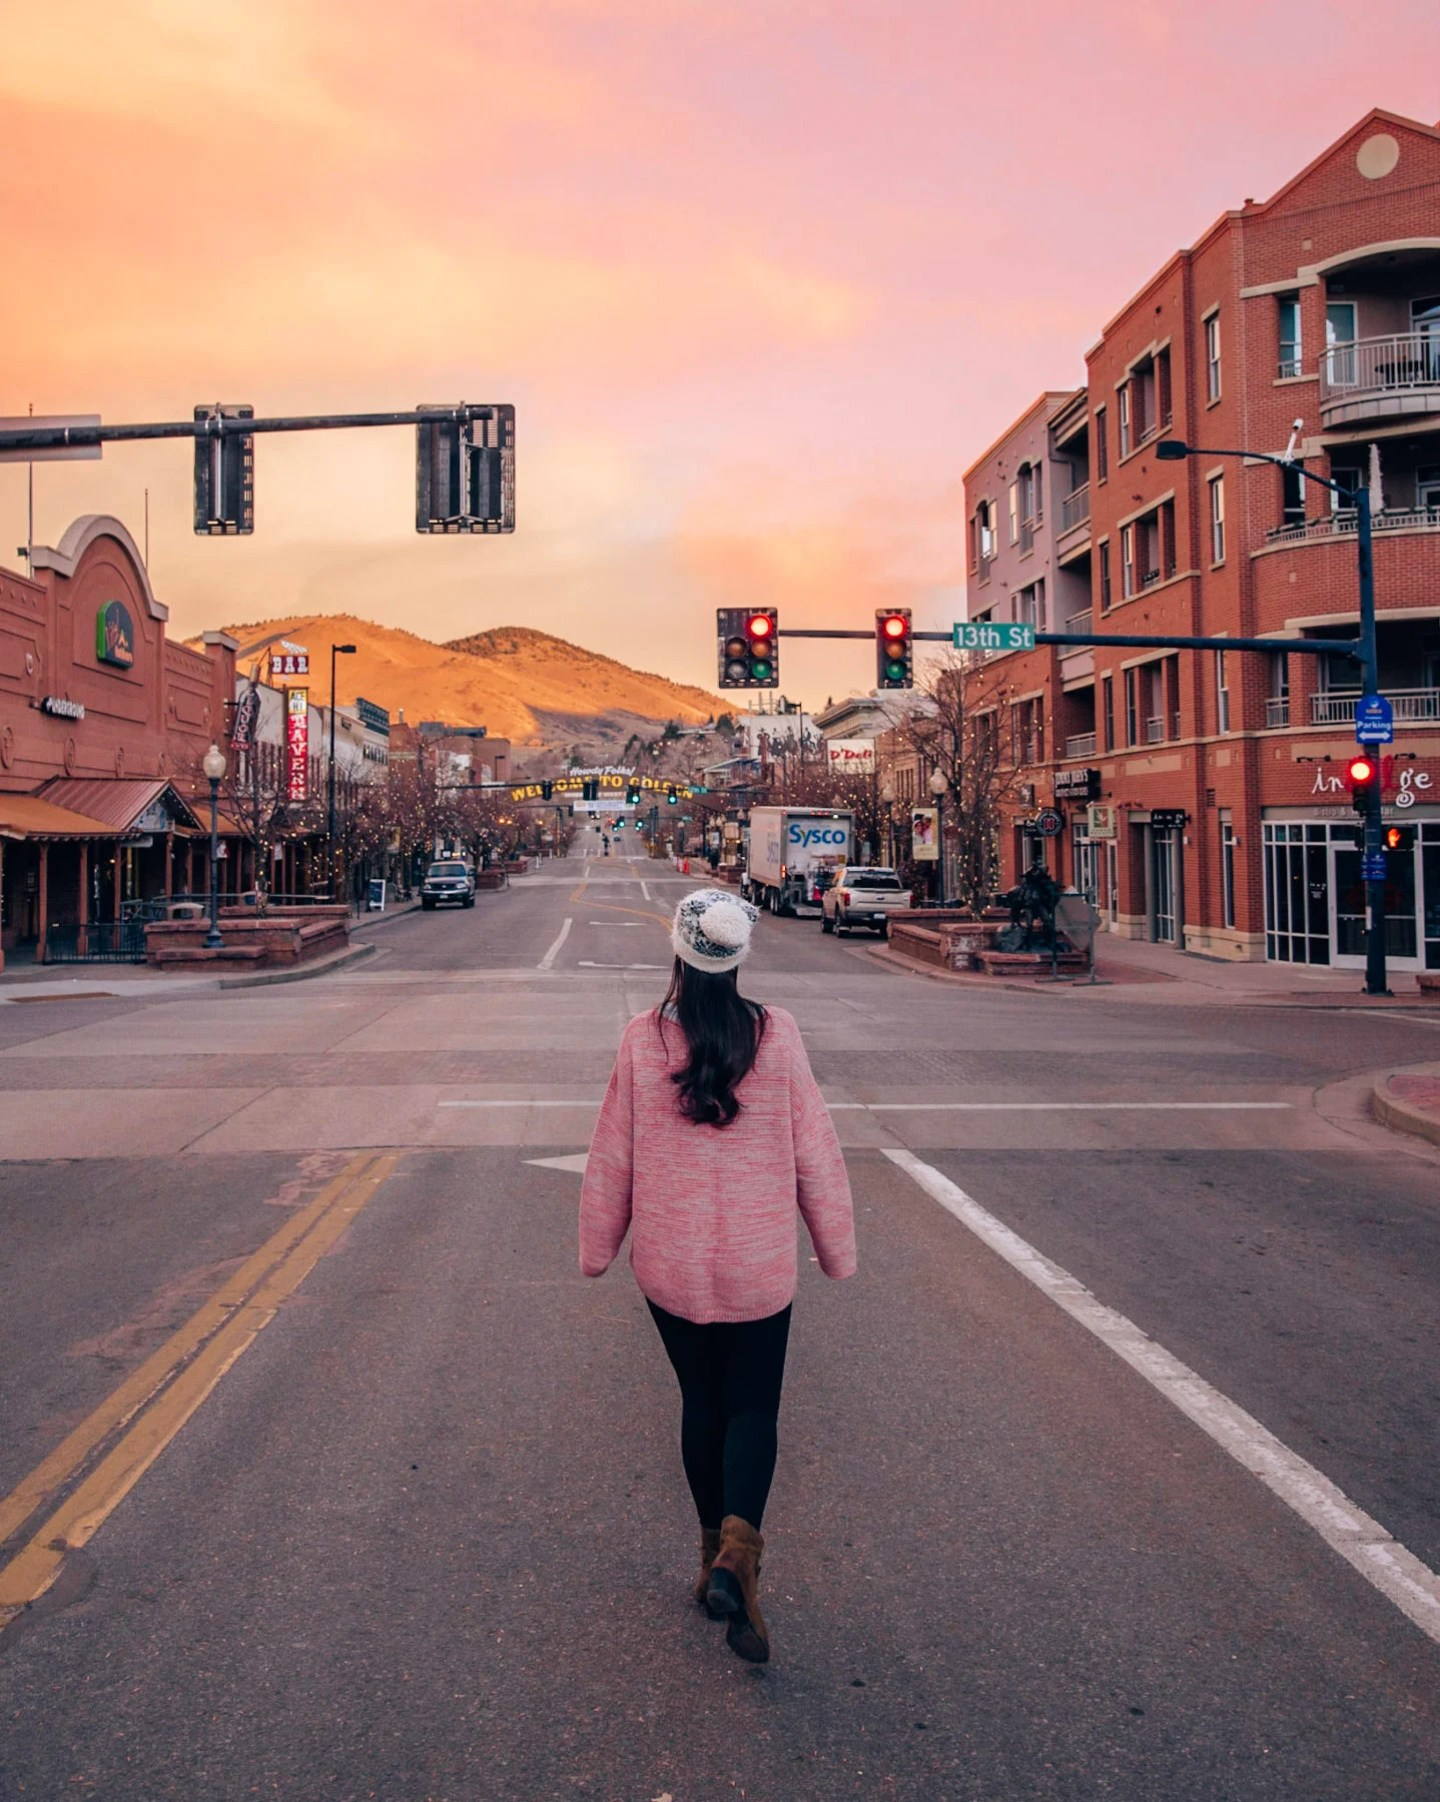 Pink sunrise from main street in Golden Colorado